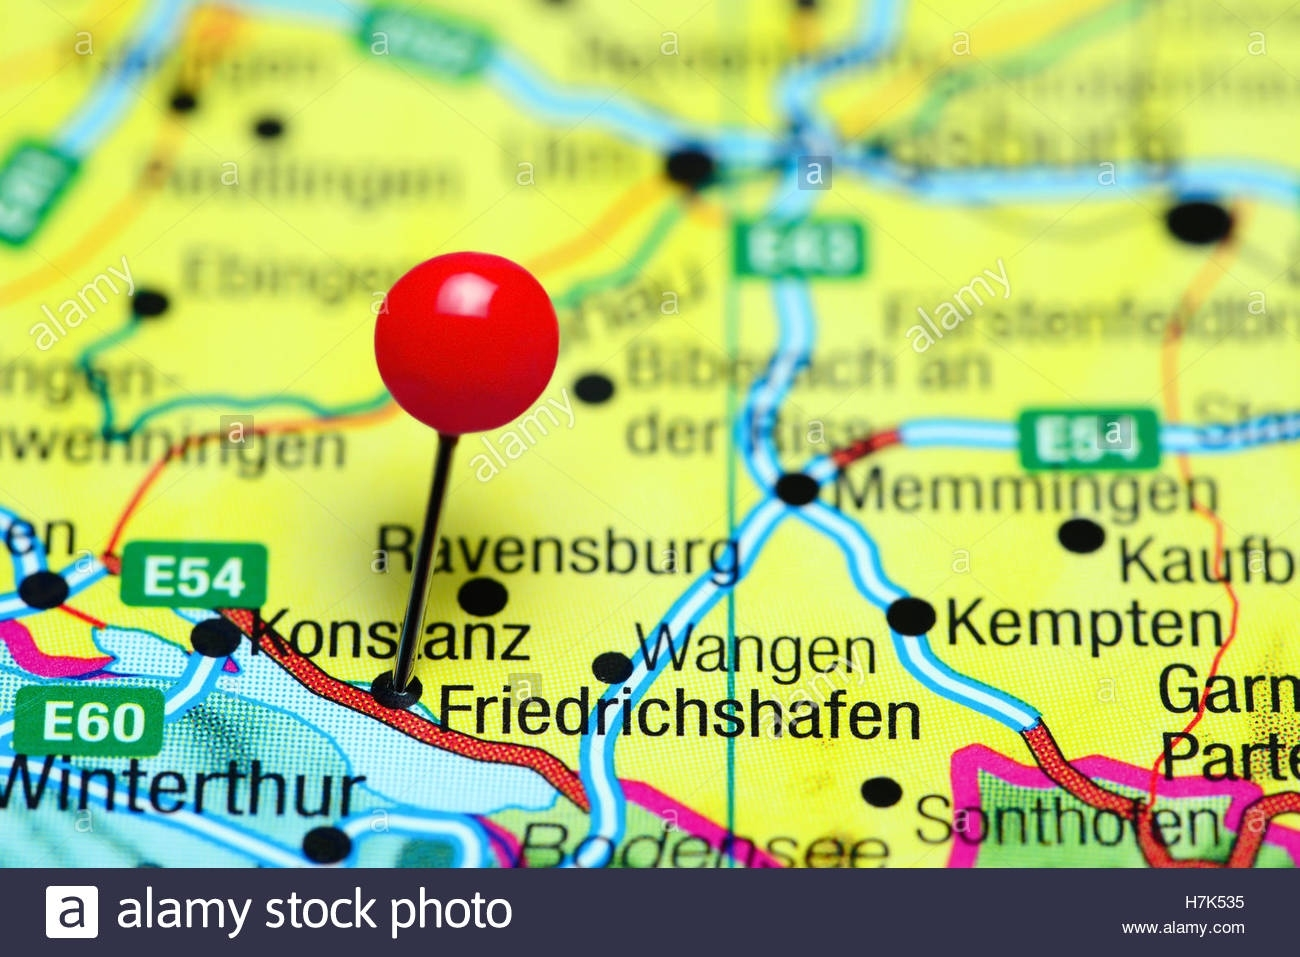 Friedrichshafen Pinned On A Map Of Germany Stock Photo: 125196265 within Friedrichshafen Germany Map